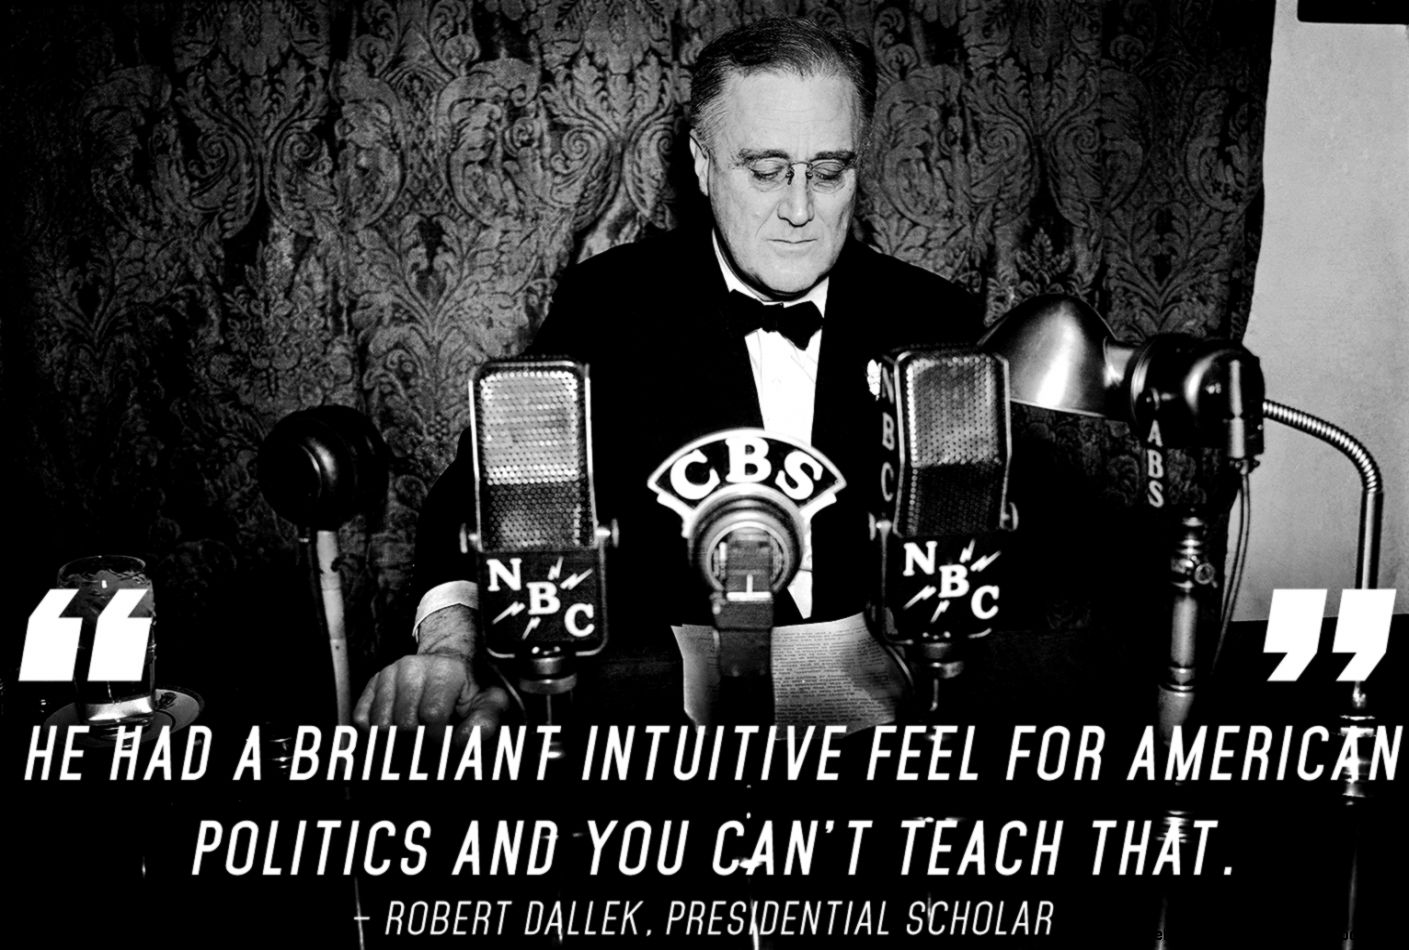 Franklin D Roosevelt Quotes Franklin D Roosevelt Quotes Wallpaper  Free Best Hd Wallpapers